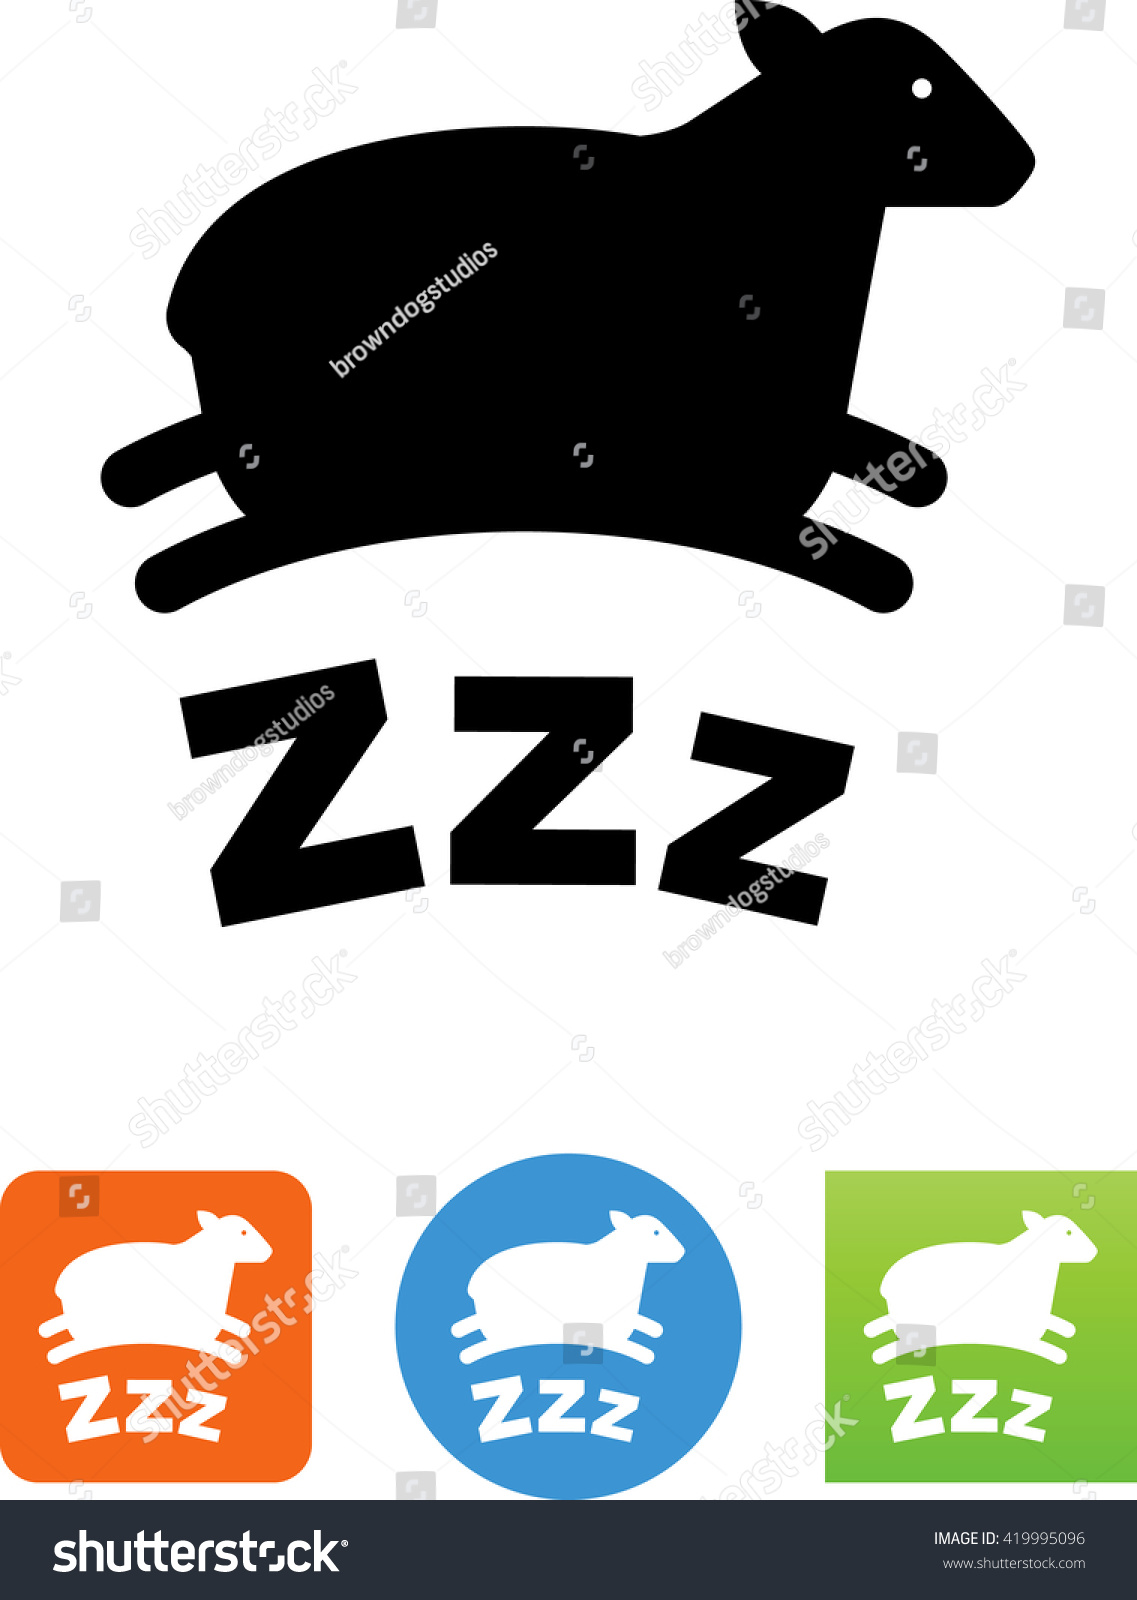 Zzz text symbol choice image symbol and sign ideas jumping sheep zzz symbol stock vector 419995096 shutterstock jumping sheep with zzz symbol buycottarizona choice image buycottarizona Choice Image